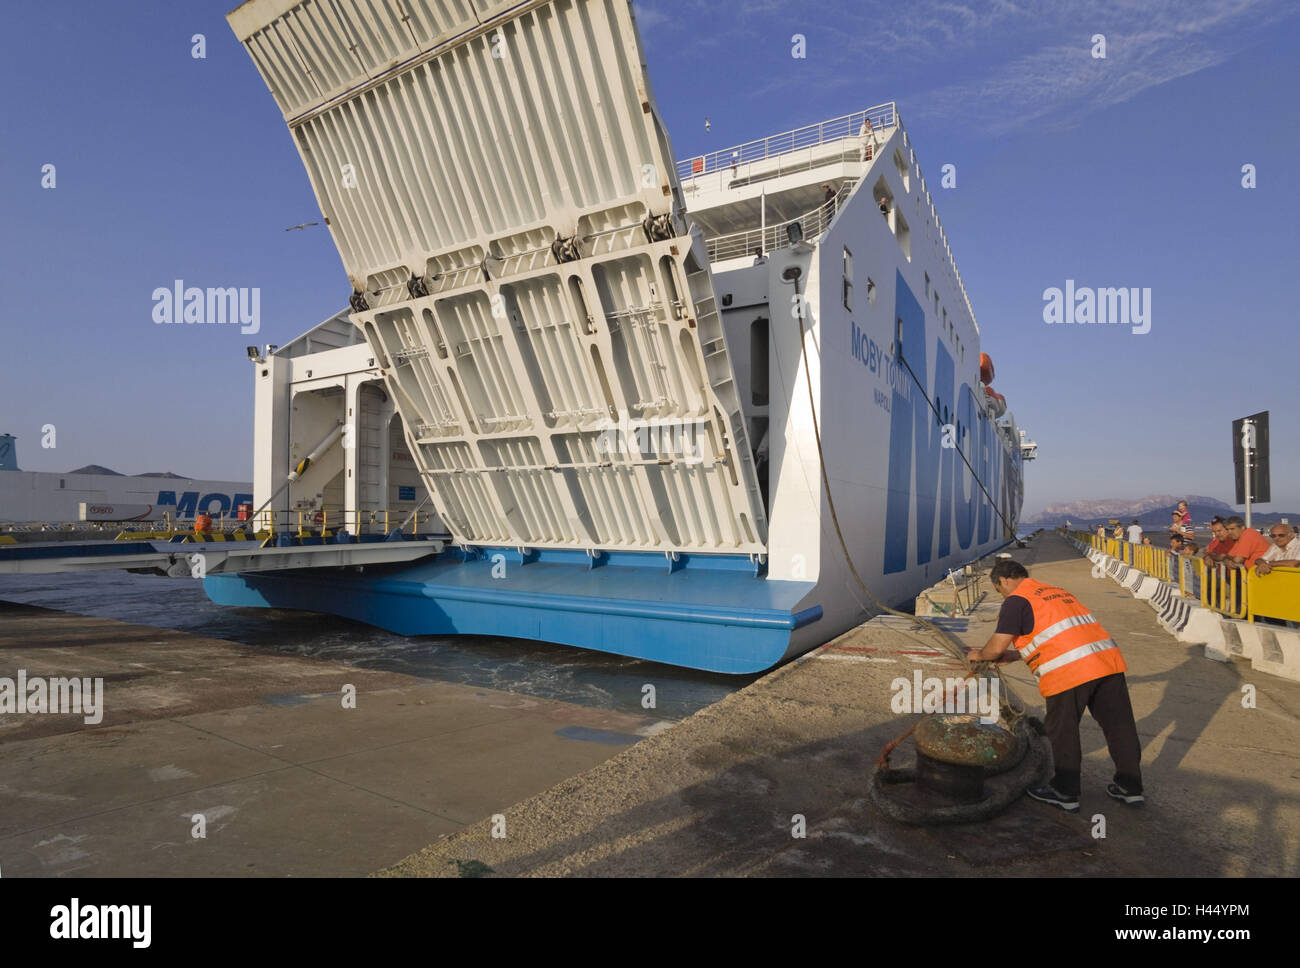 Italy, Sardinia, 'Moby Line' ferry, Olbia, harbour, - Stock Image